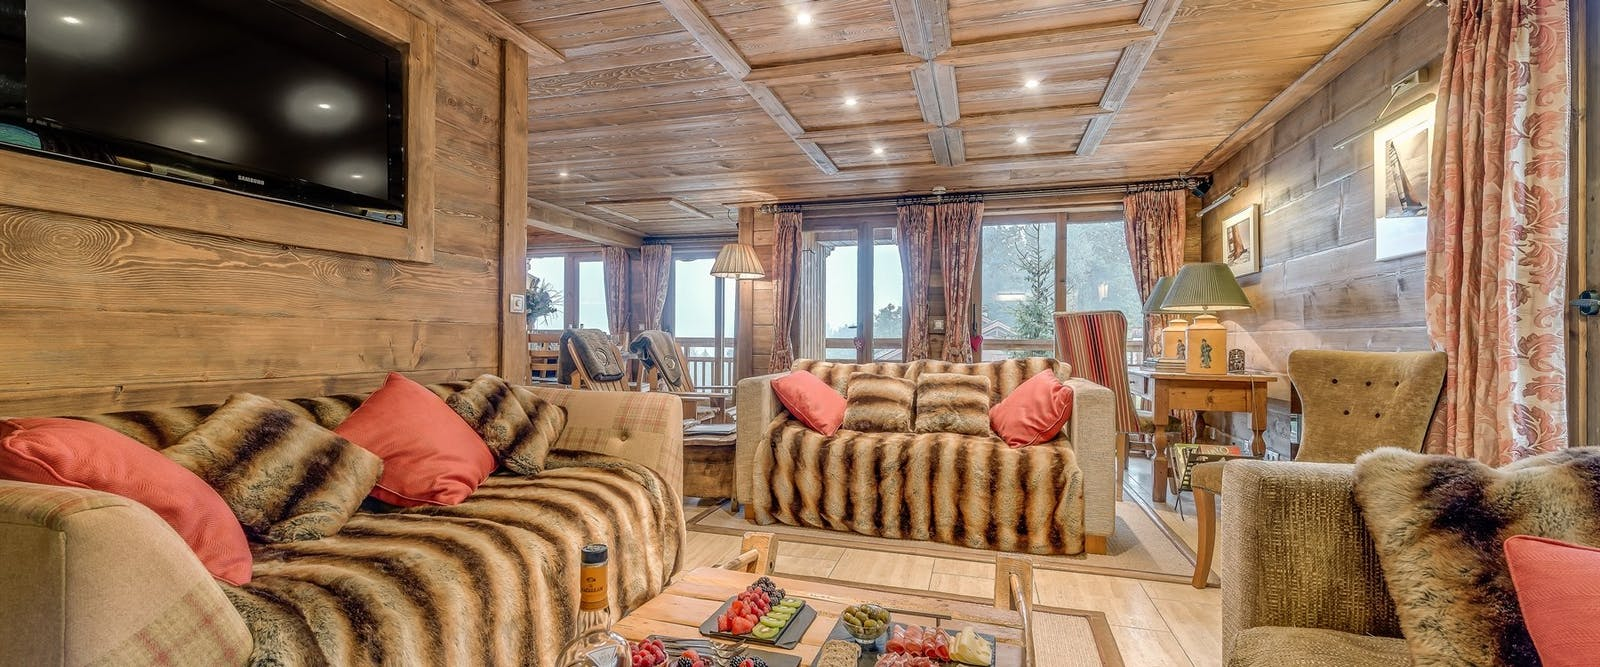 Lounge of Chalet Chopine